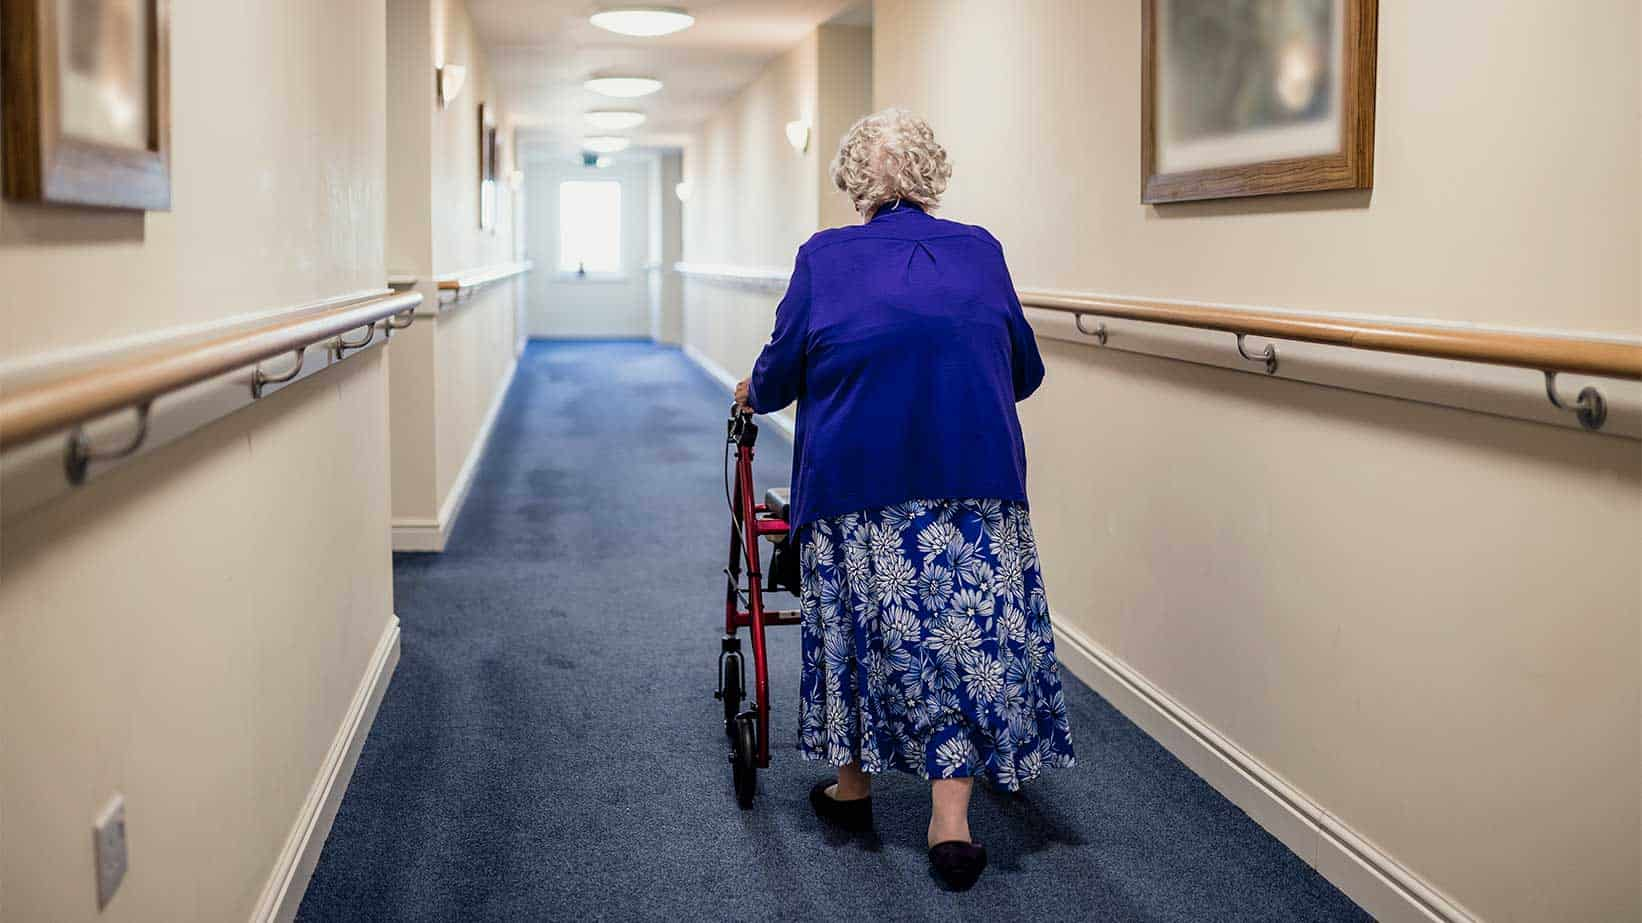 Old lady walking down a corridor on a zimmer frame